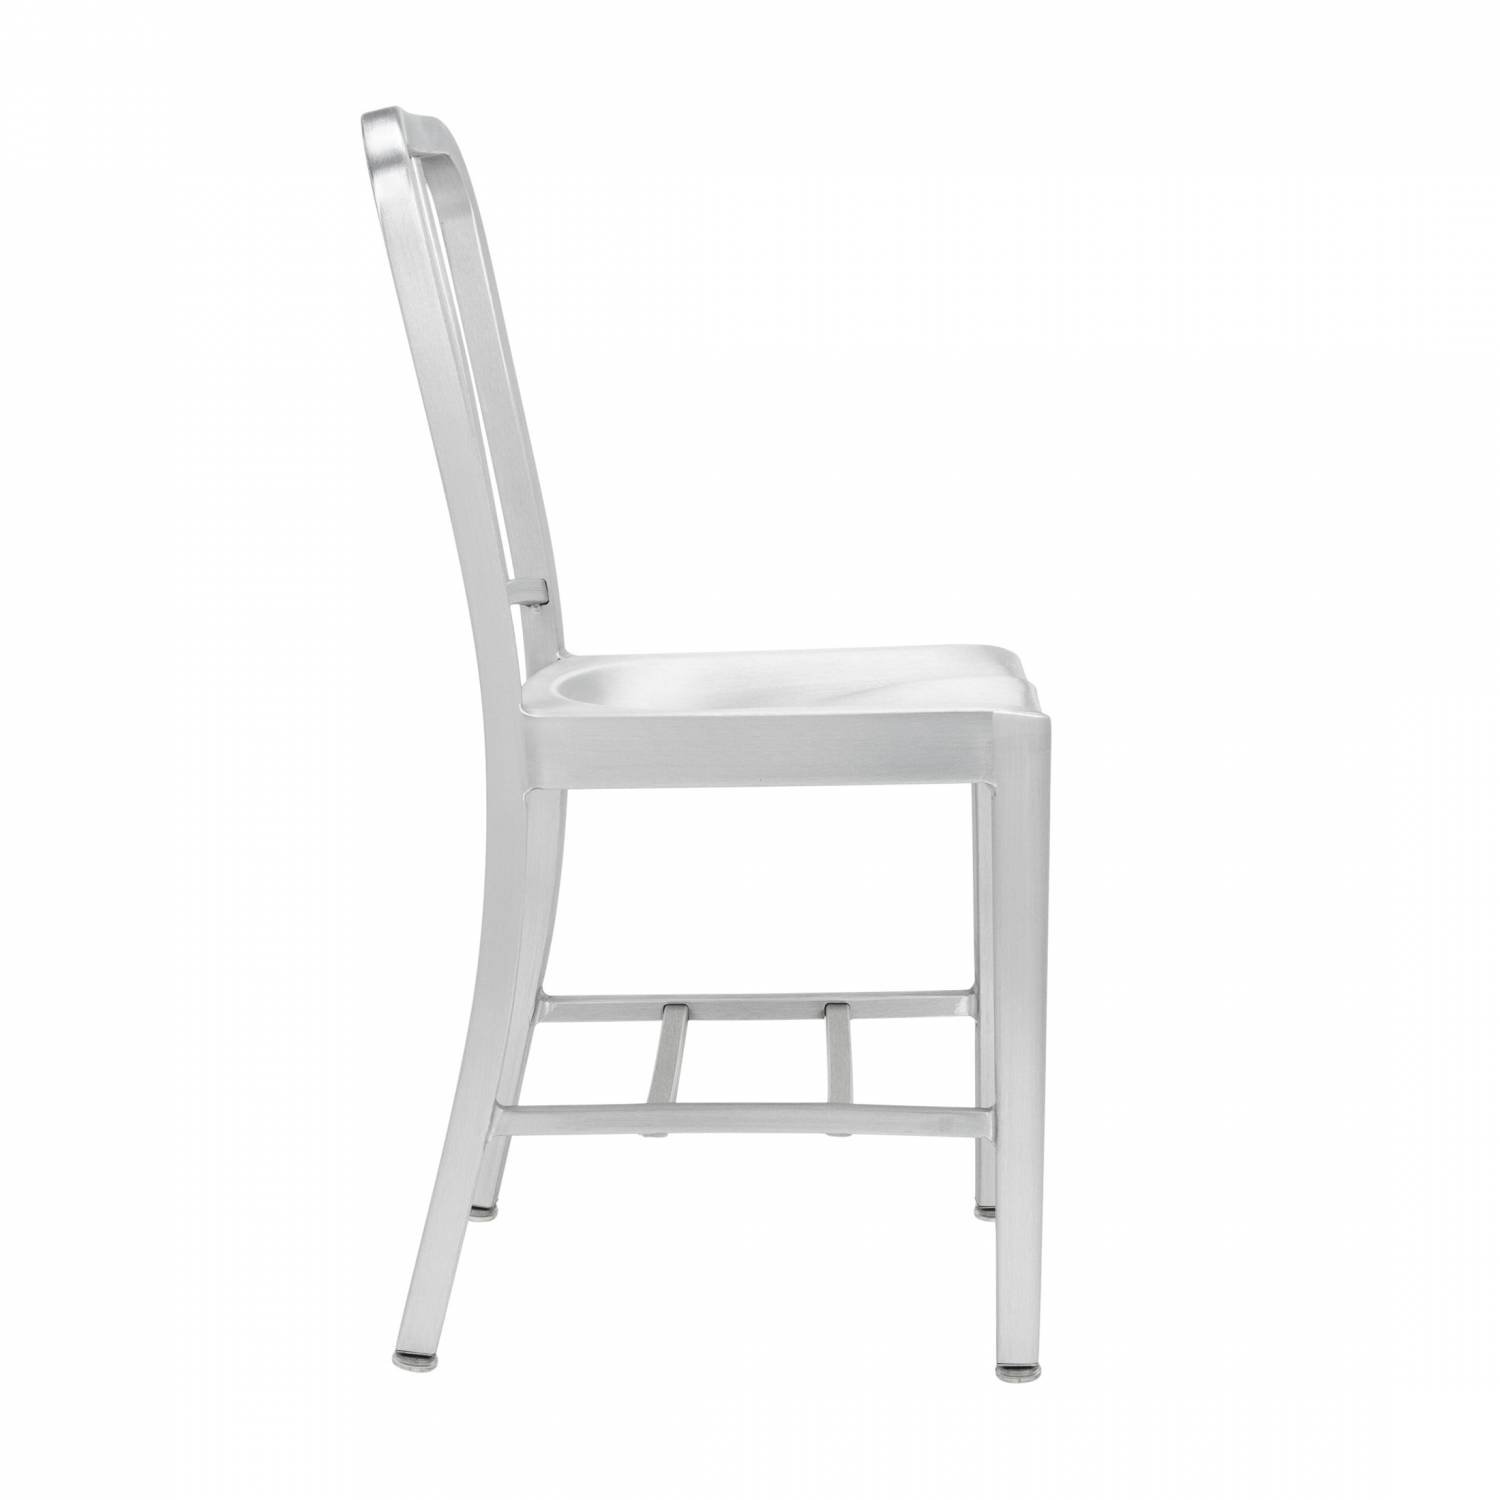 1006-navy-chair-4